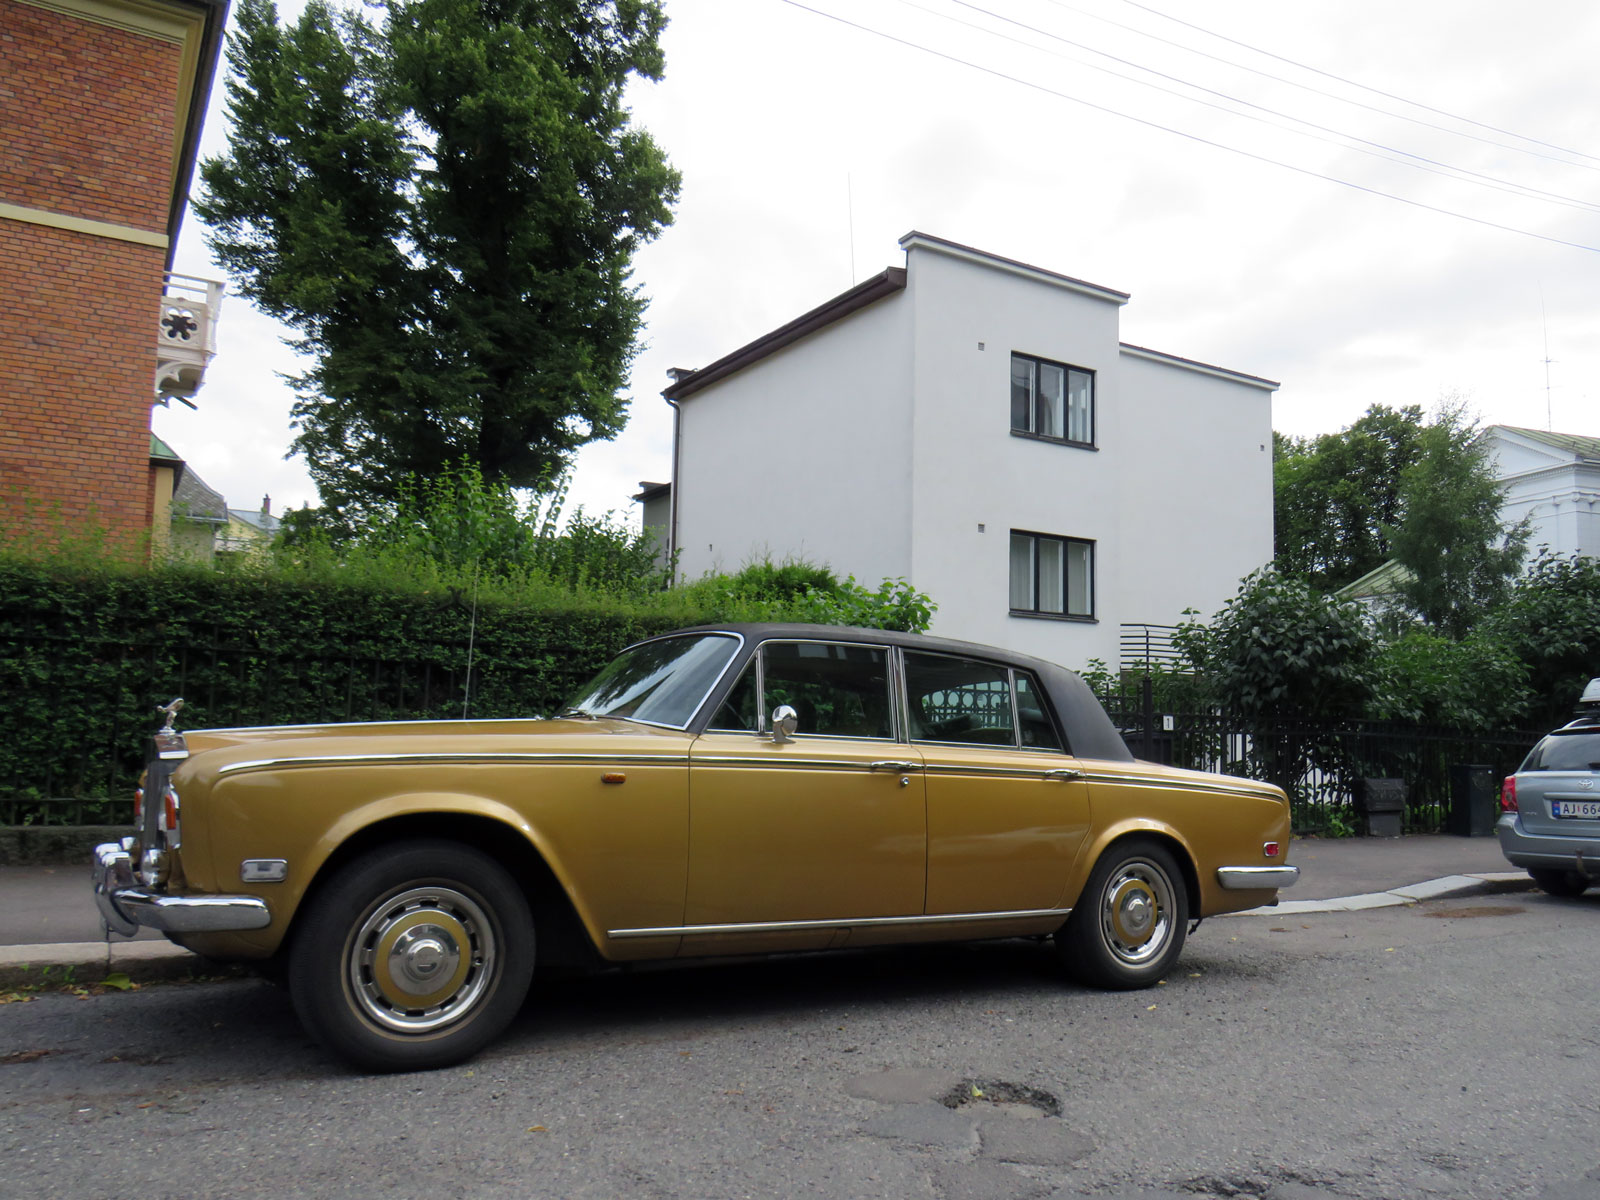 1975 Rolls-Royce Silver Shadow british luxury sedan